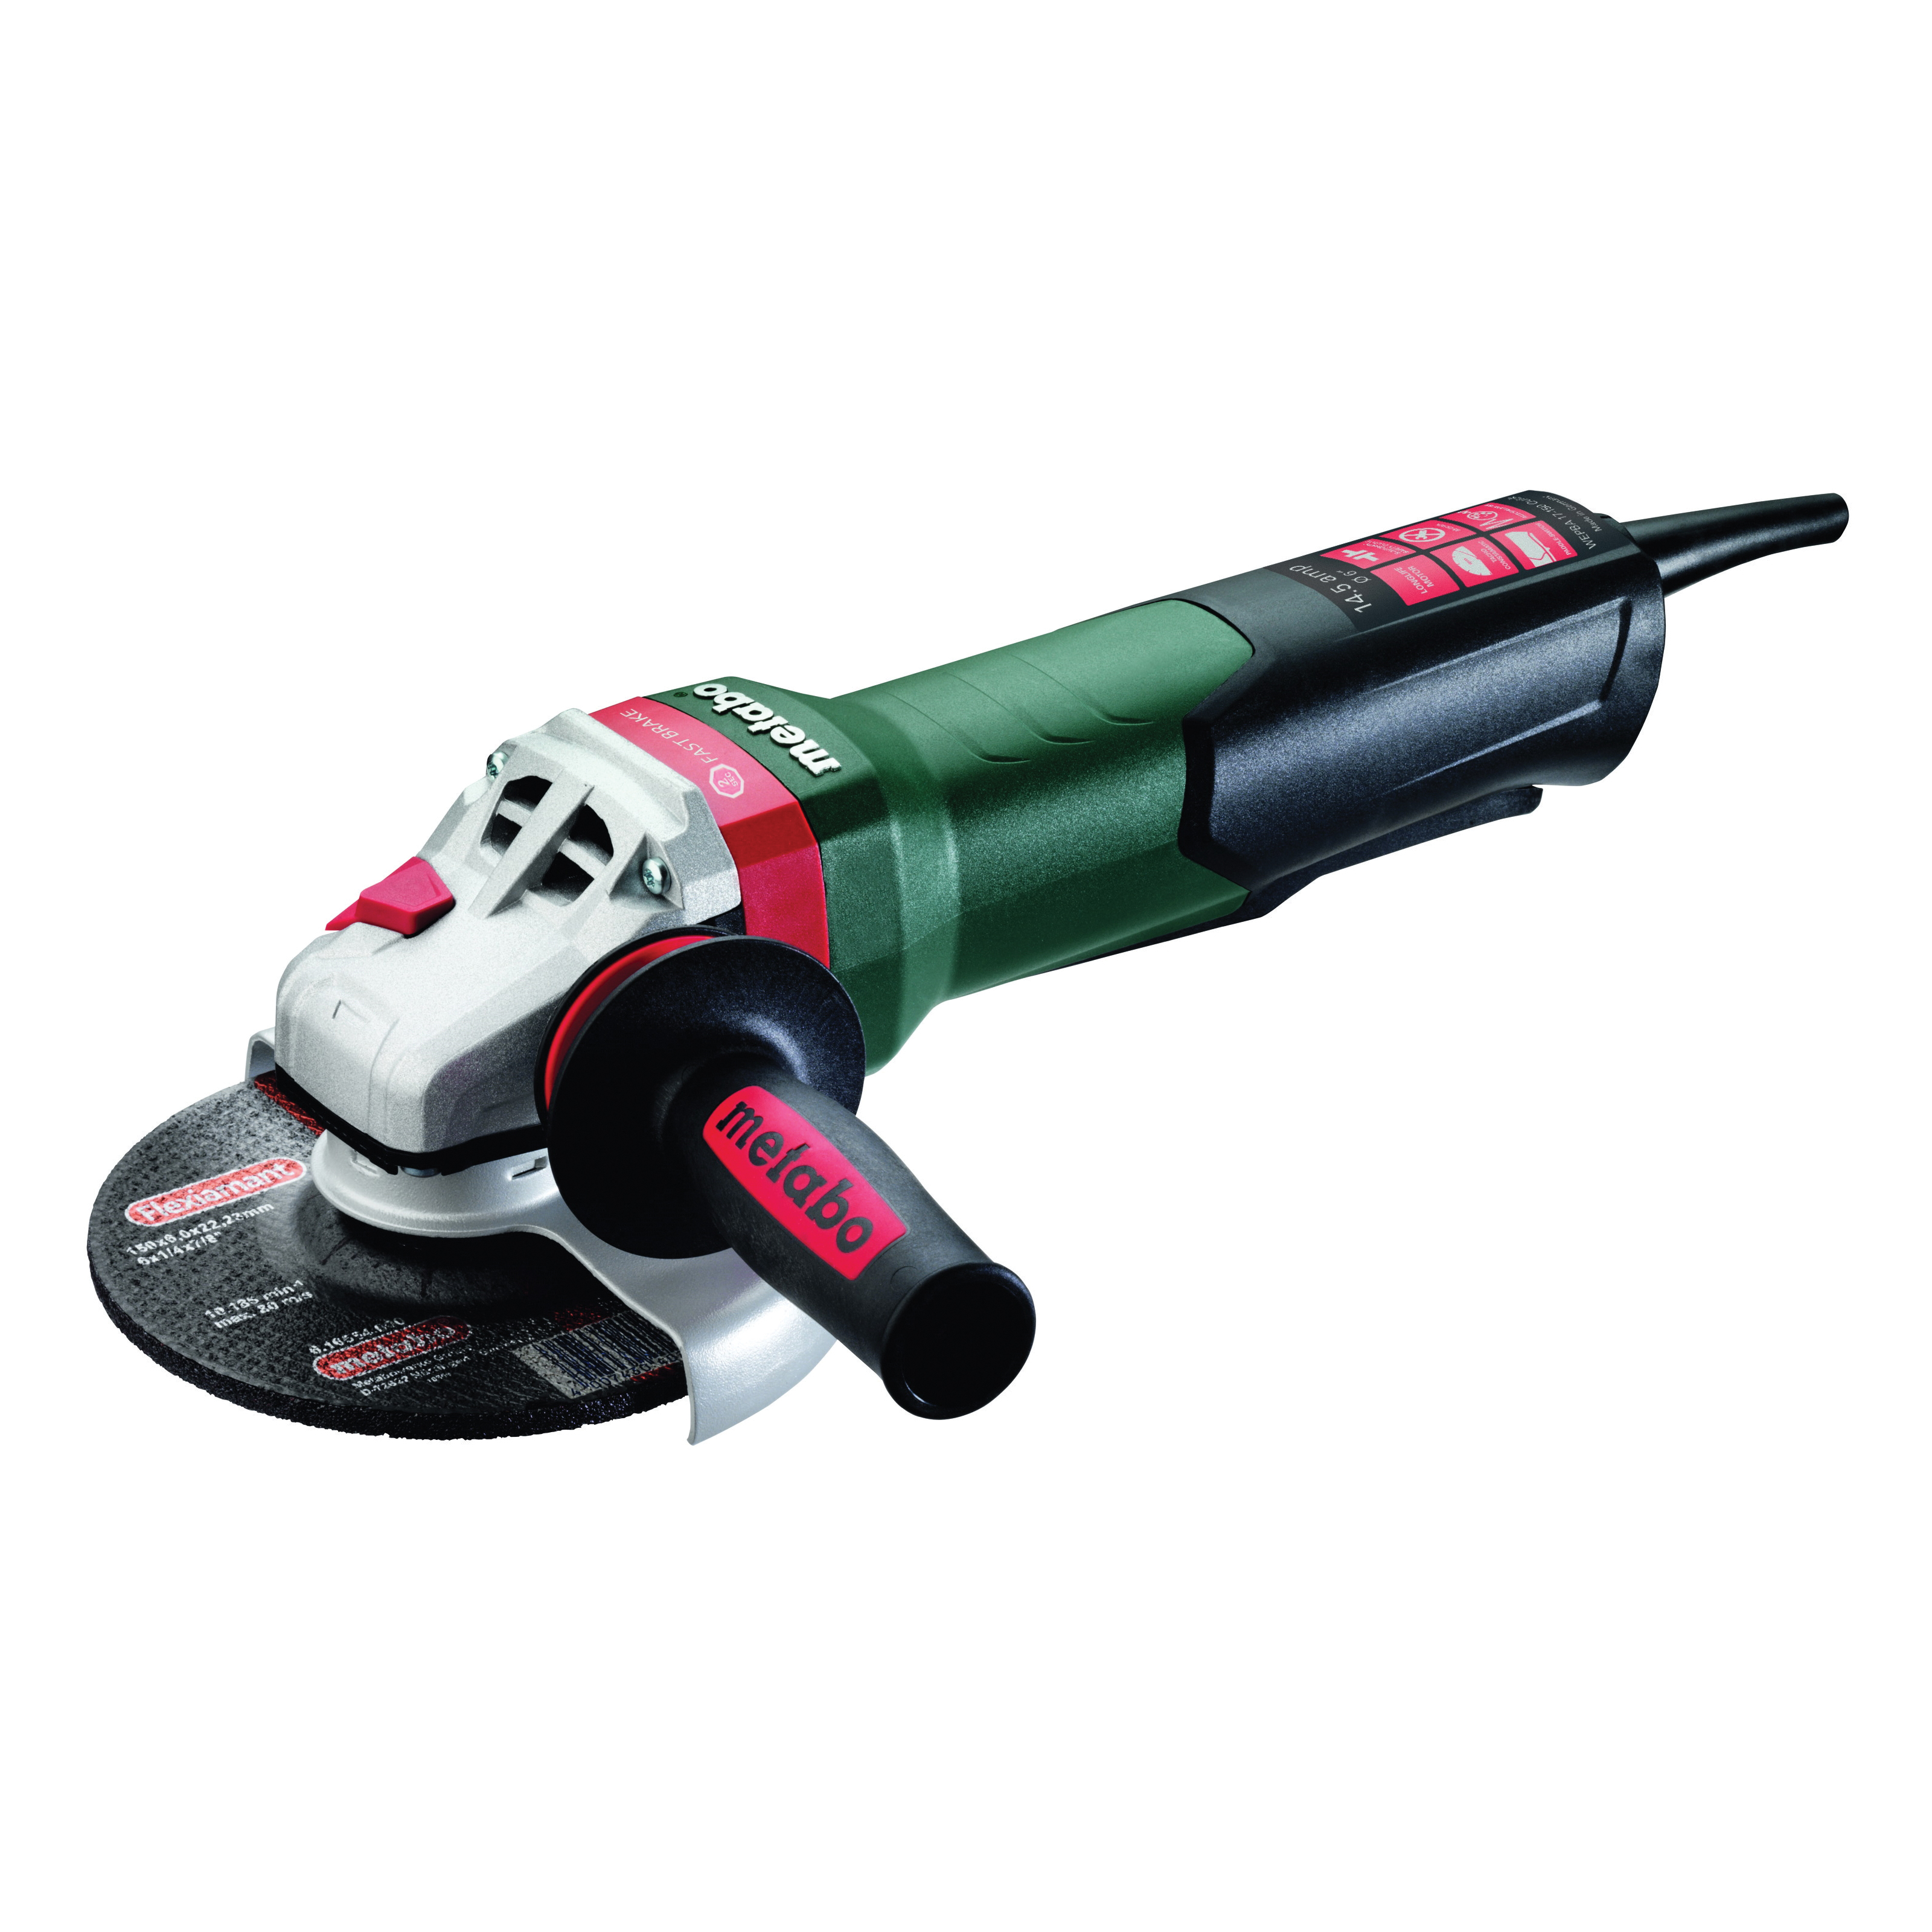 metabo® 600552420 Electric Angle Grinder, 6 in Wheel, 5/8-11 UNC, 110 to 120 VAC, Tool Only